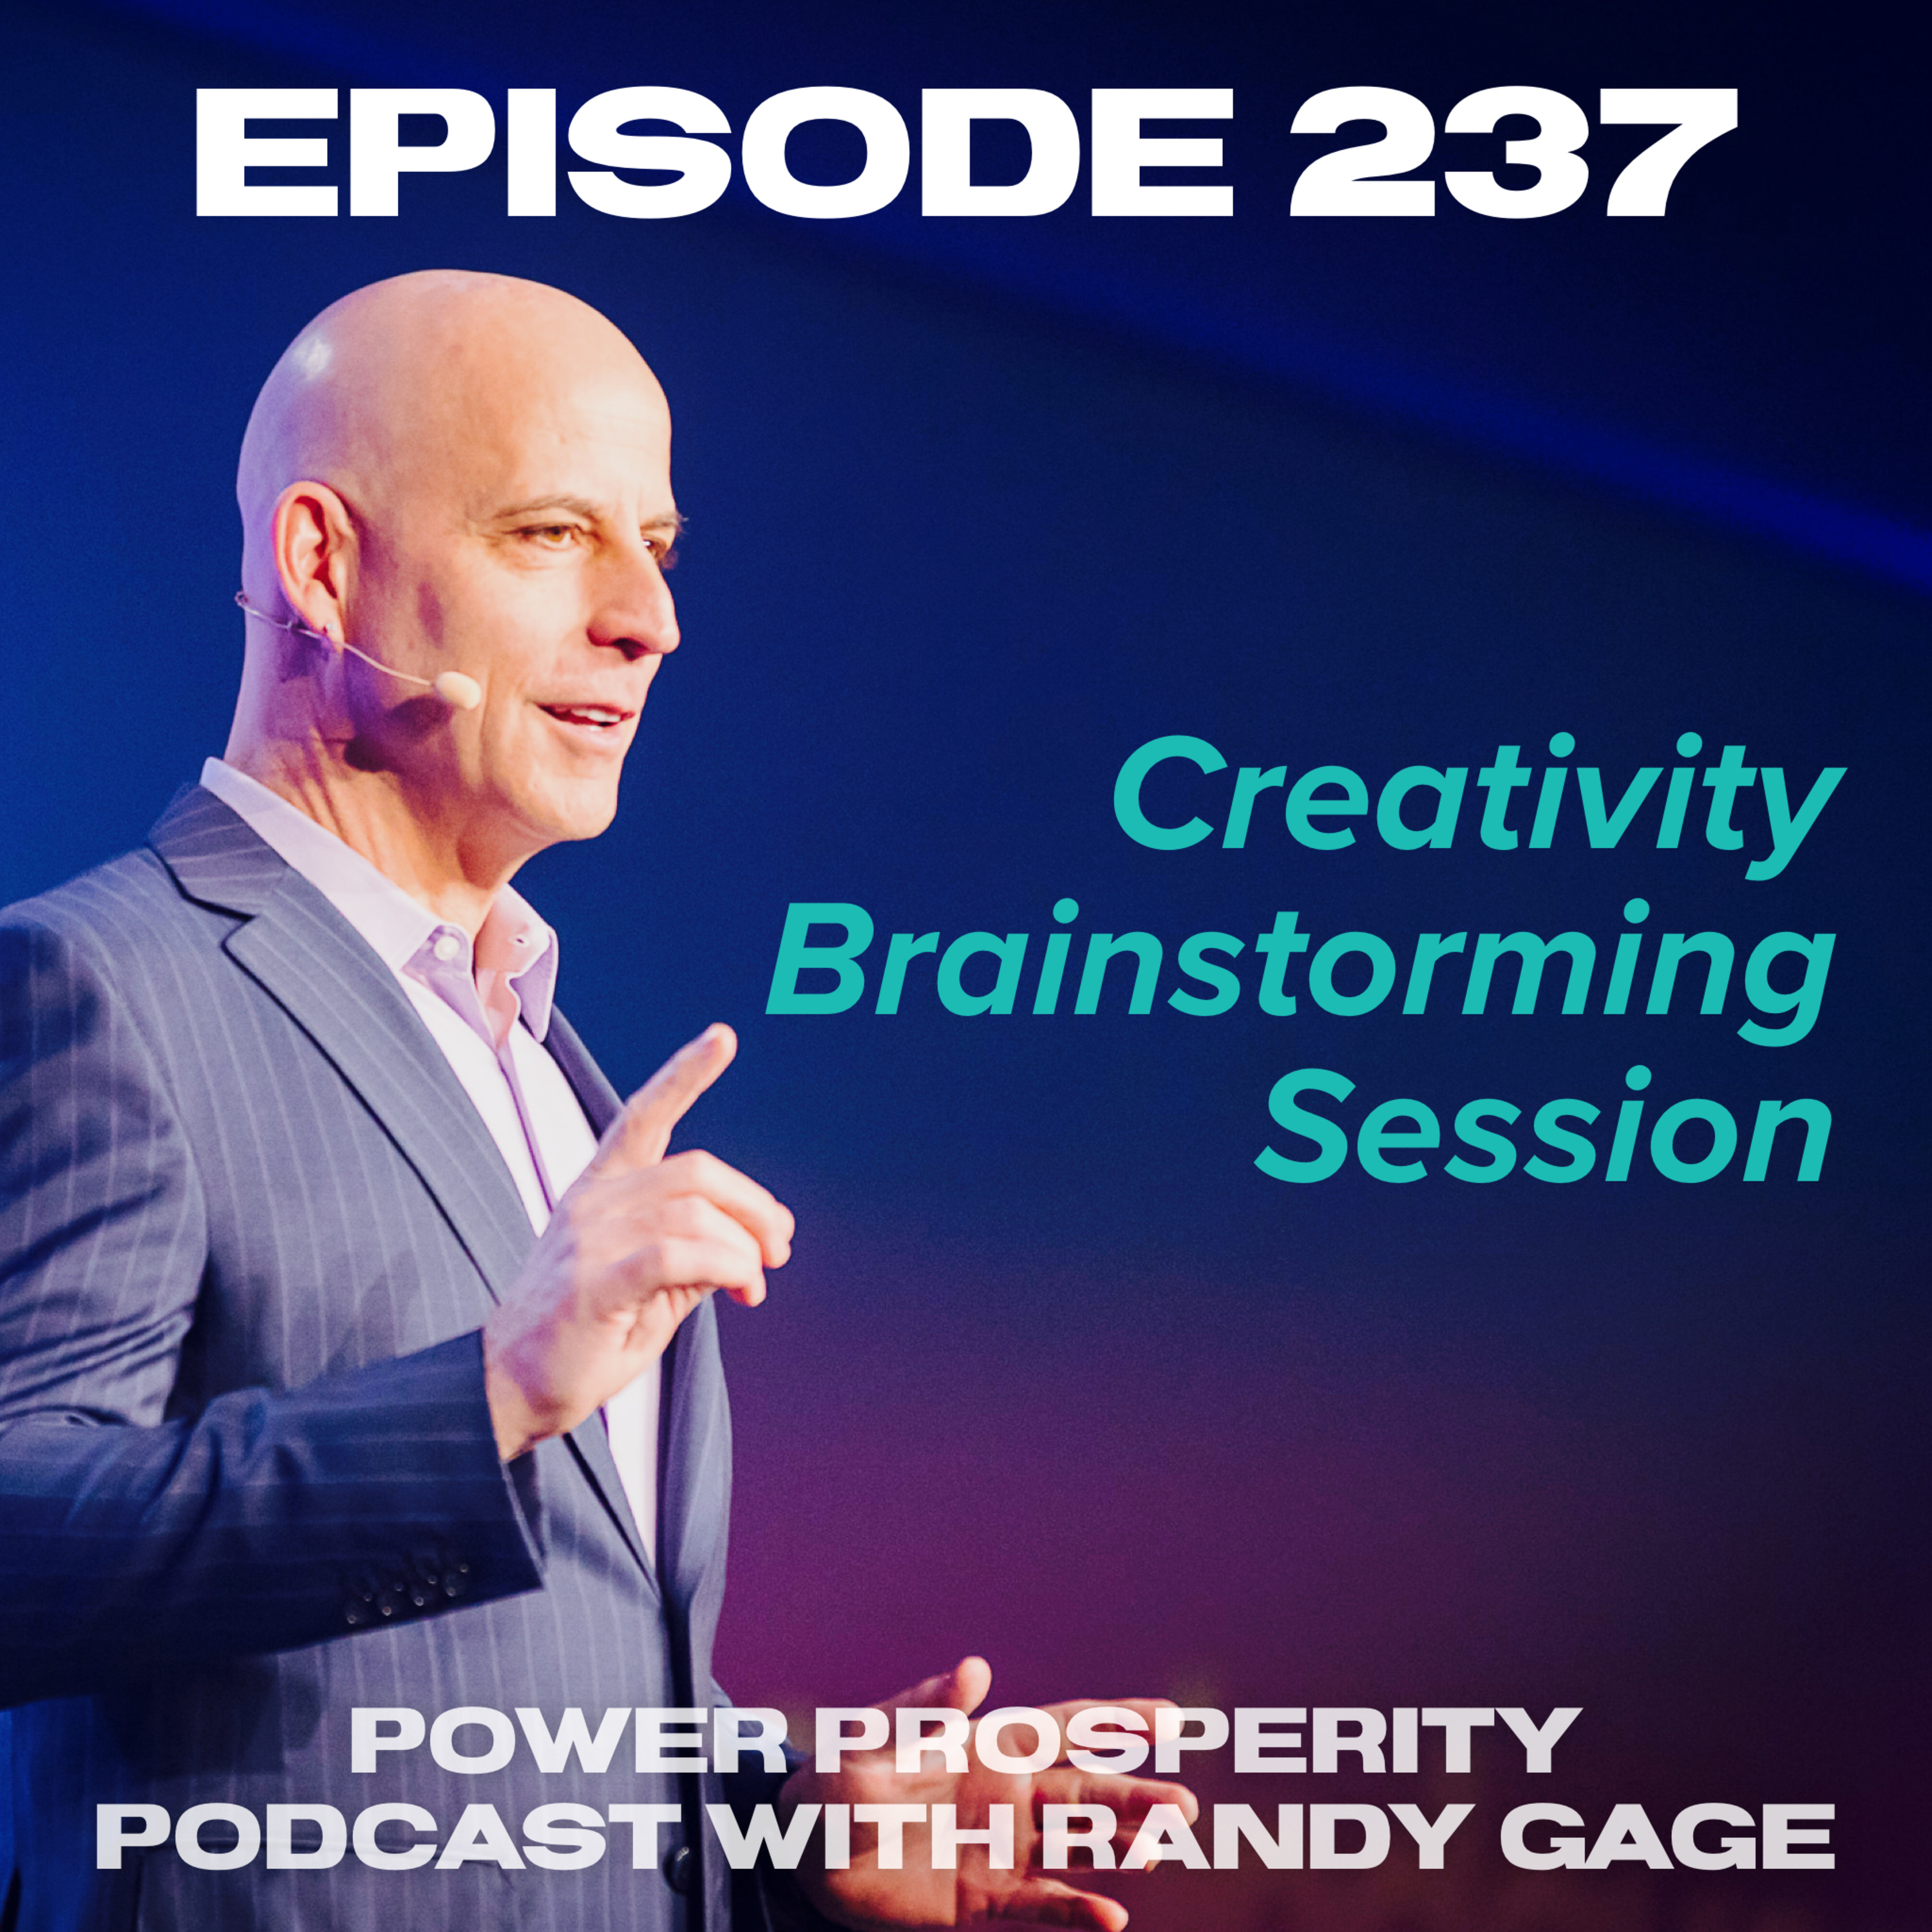 Episode 237: Creativity Brainstorming Session (Podcast Exclusive)